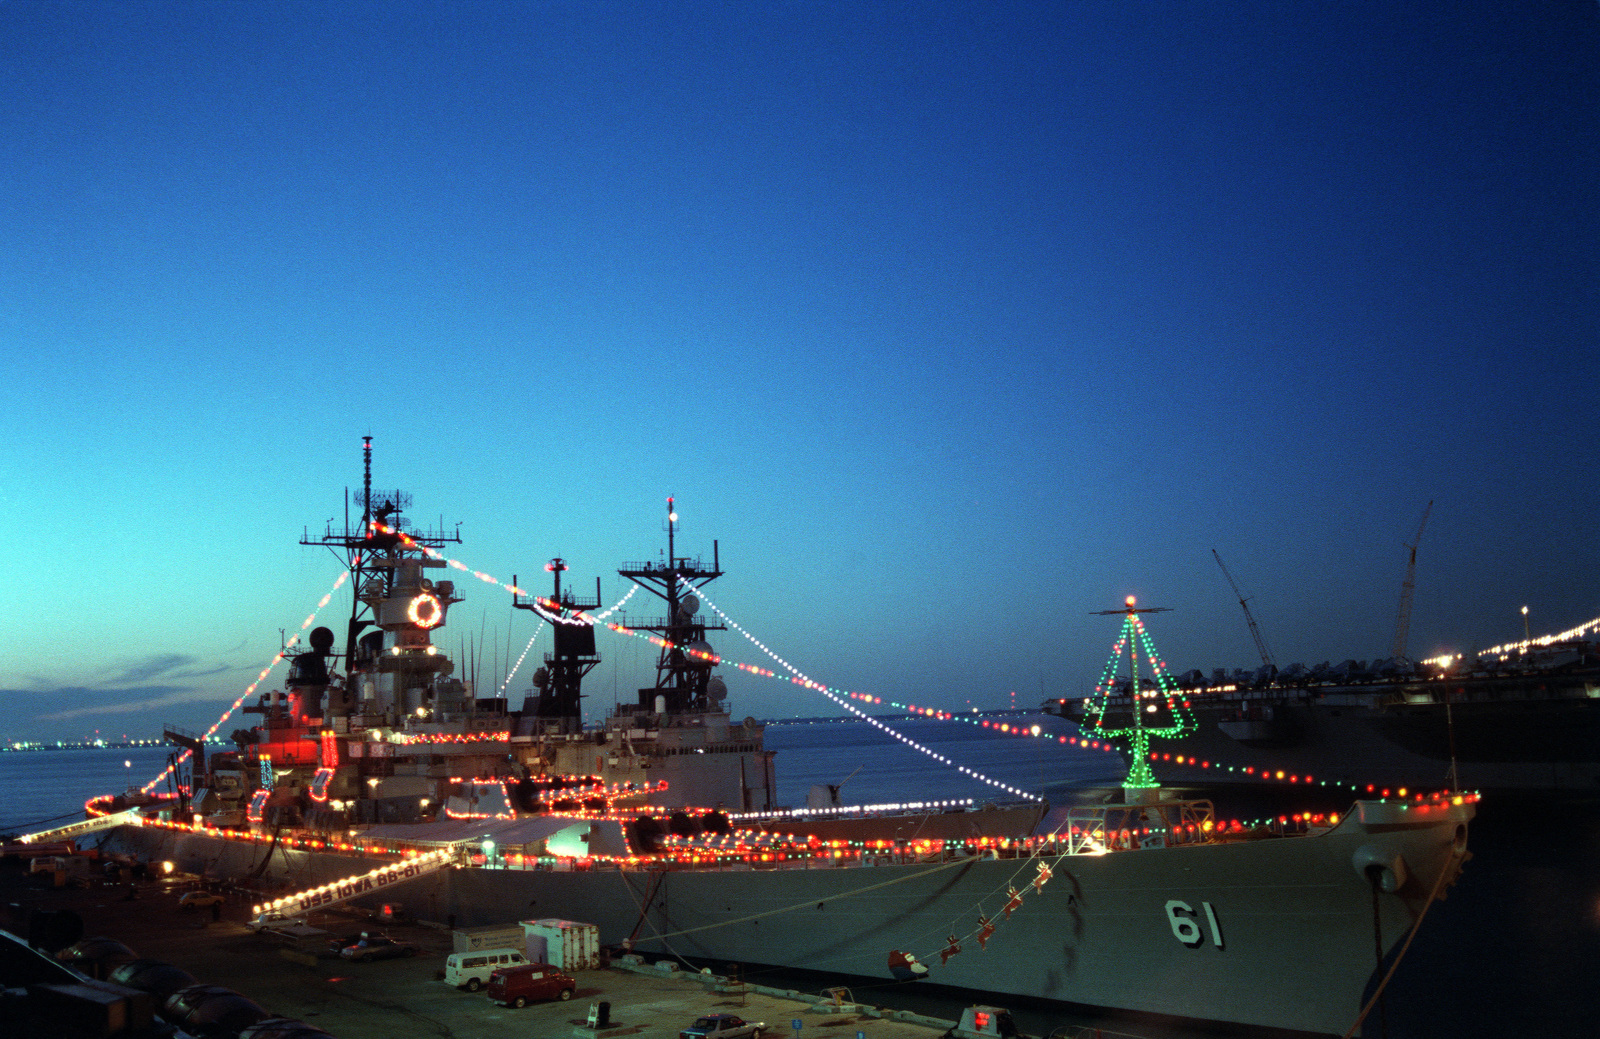 Are The Ships At Norfolk Naval Base Decorated For Christmas 2020 Christmas lights and decorations adorn the battleship USS IOWA (BB